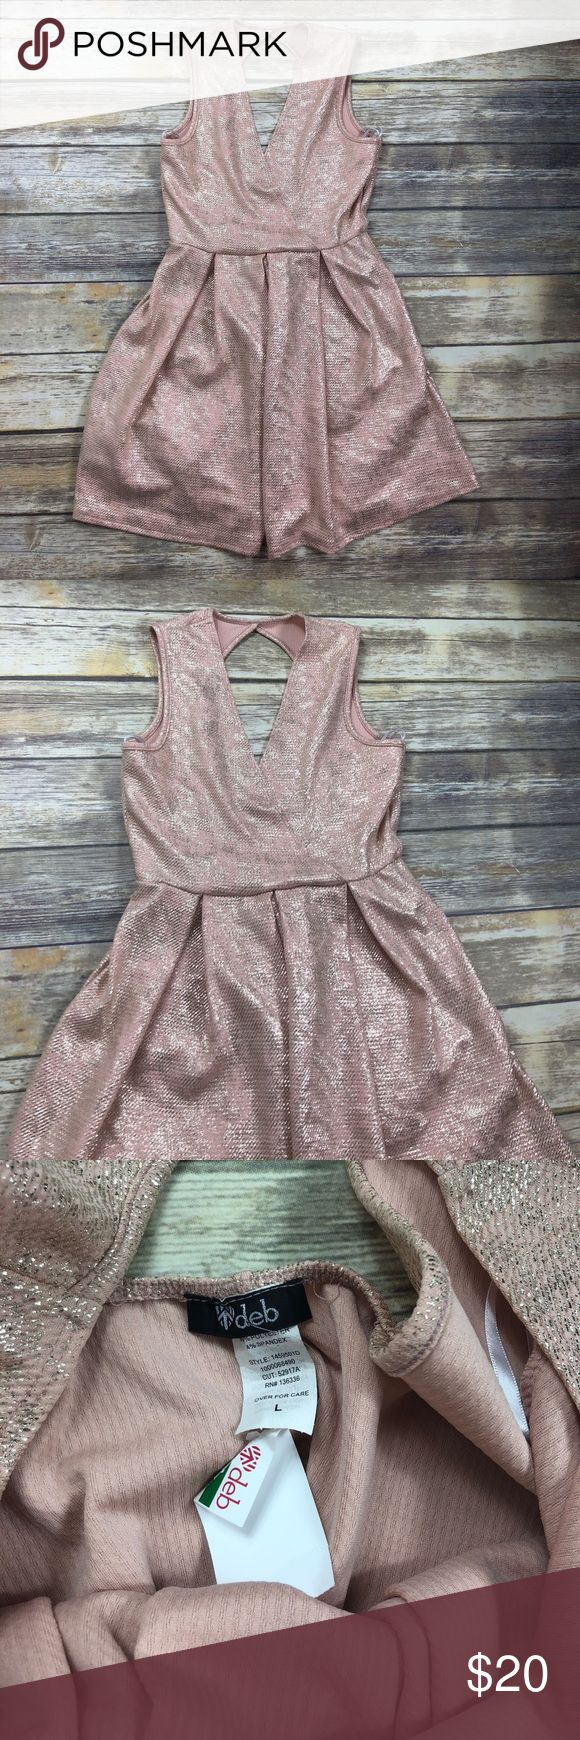 Pink and Silver Night Out Dress Great dress for a party! Light pink with silver throughout. New with tags and has never been worn. Size large. Length is approx 31 inches (back top to bottom) and bust (pit to pit) is approx 14 inches. Keep in mind this is a juniors large. No trades or modeling. I am always open to offers and if you bundle your favorite items then I can send you a private offer! 006 Deb Dresses